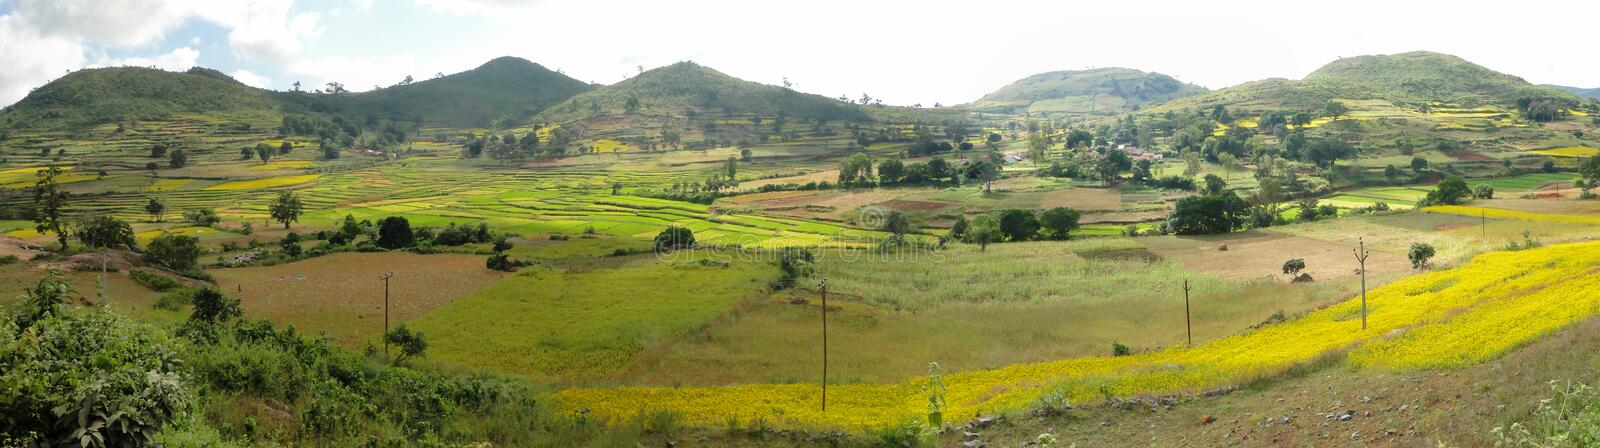 Download Rice Paddies In Valley Of The Eastern Ghats Stock Photo - Image: 15525580